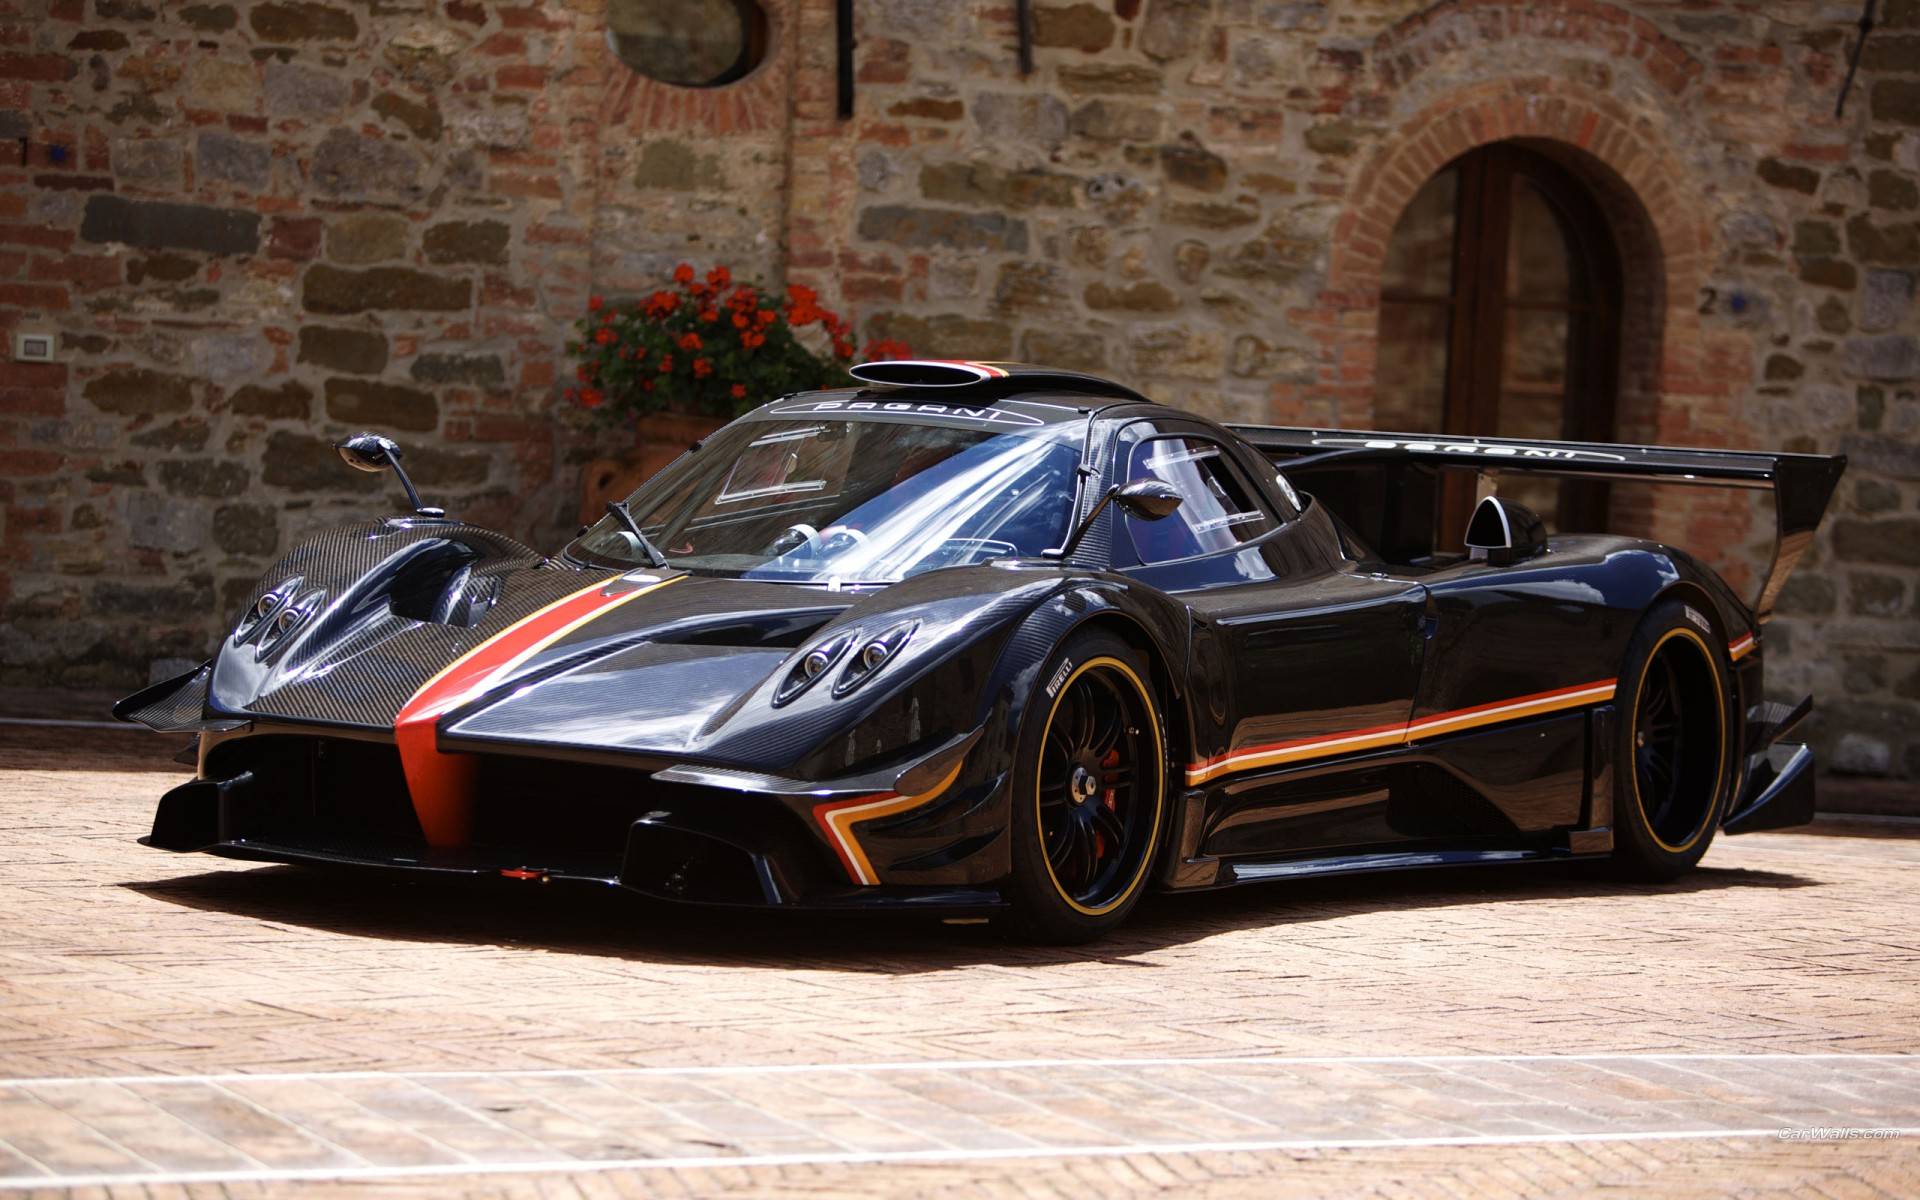 2013 Pagani Zonda Revolucion Wallpaper | HD Car Wallpapers